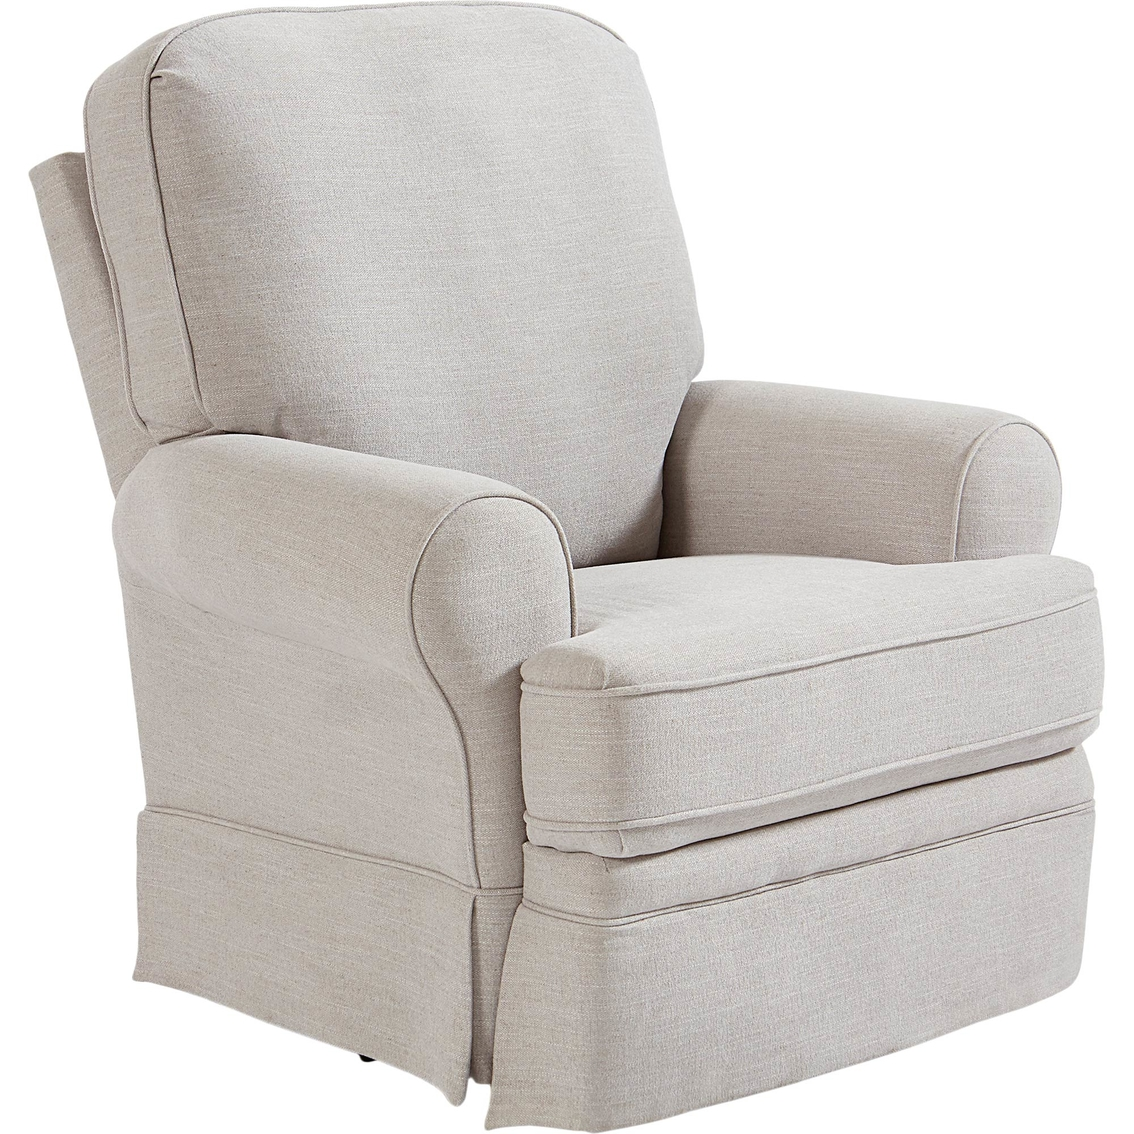 Best Home Furnishings Juliana Swivel Glider Recliner